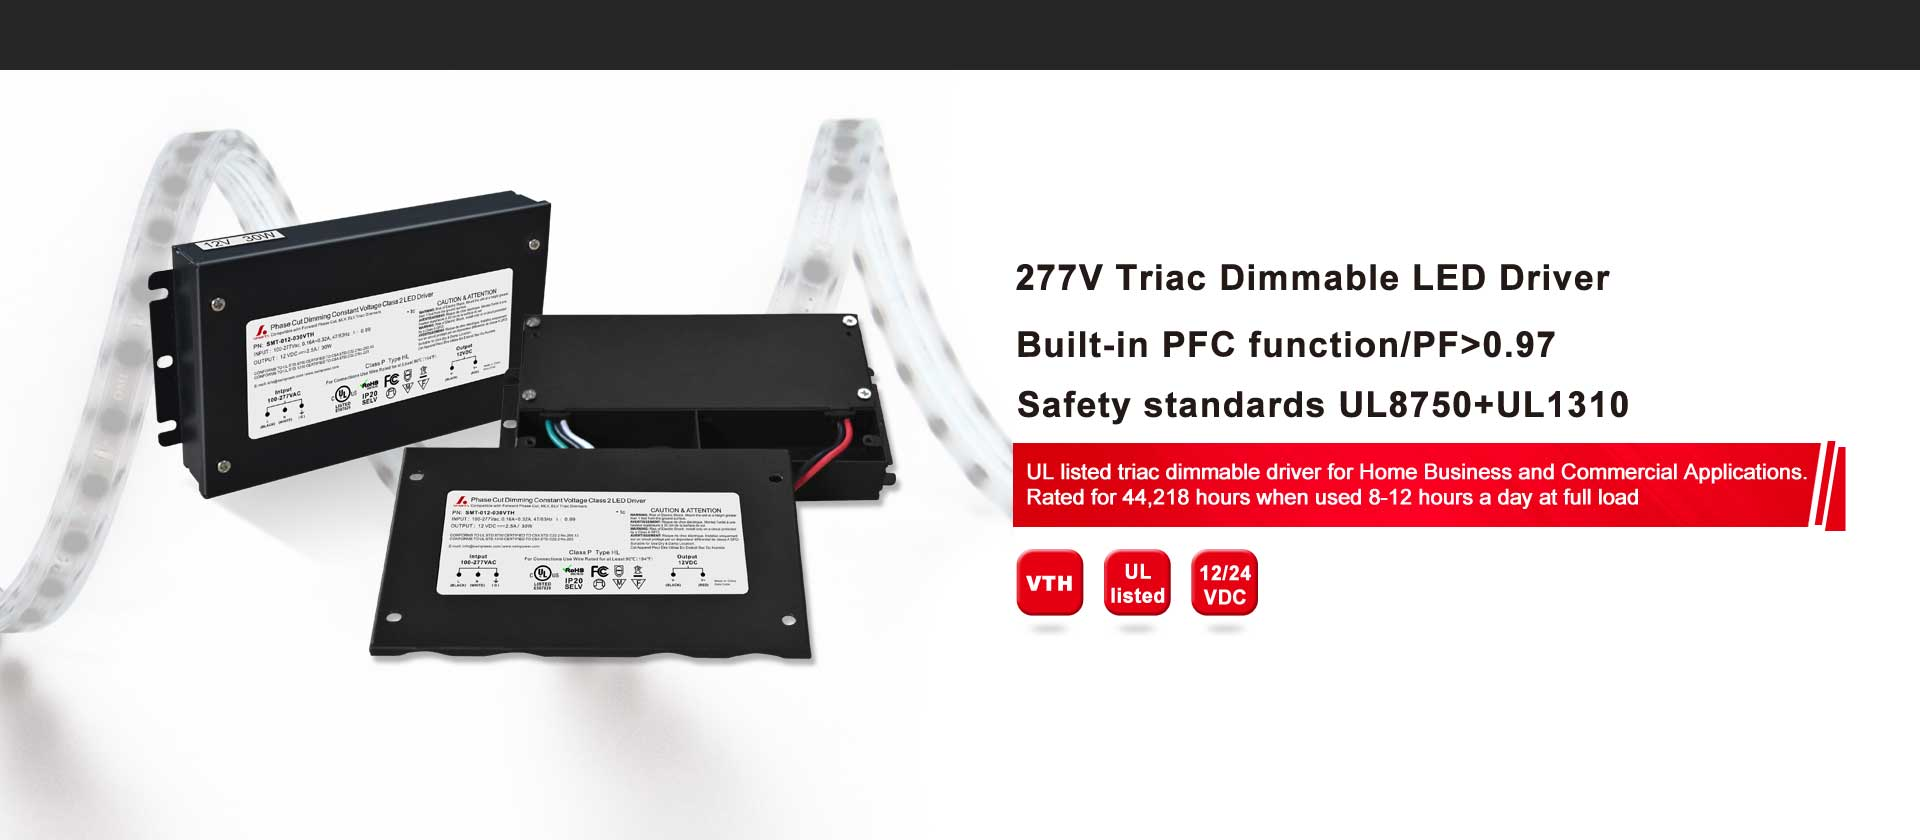 277V Triac Dimmable LED Driver